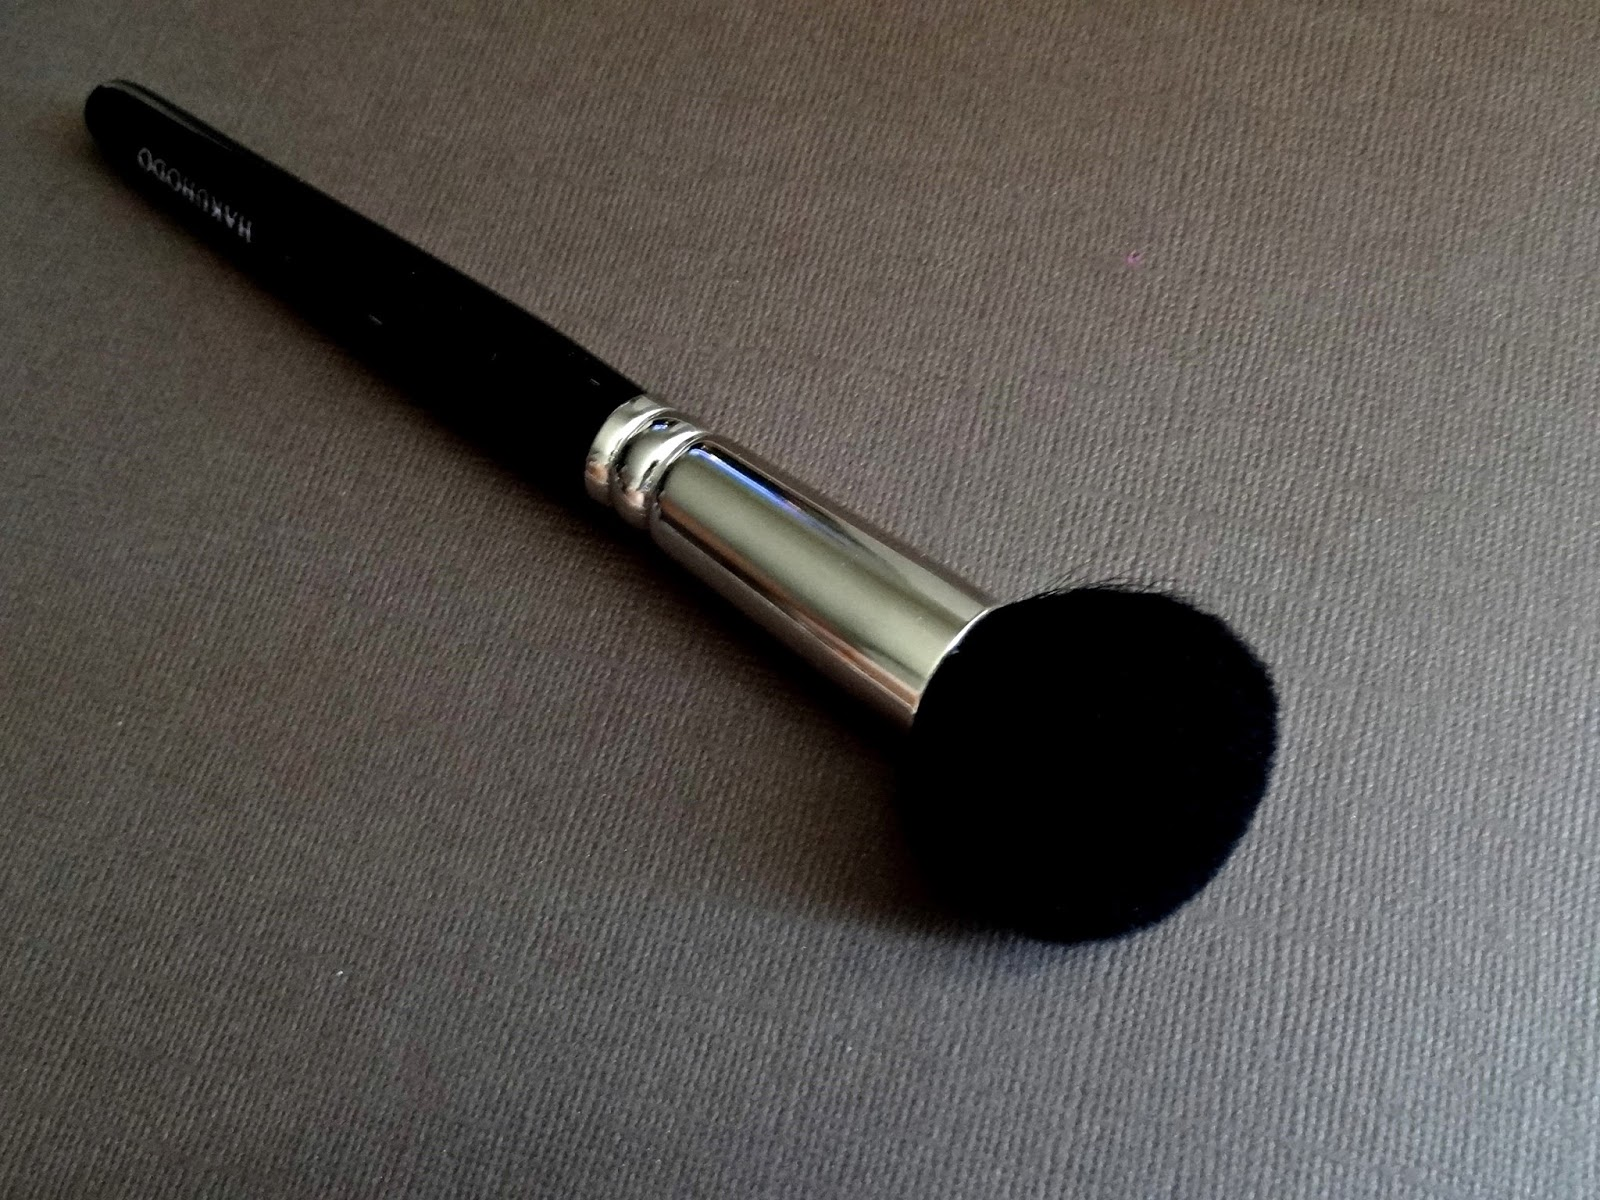 Hakuhodo 210 Blush Brush